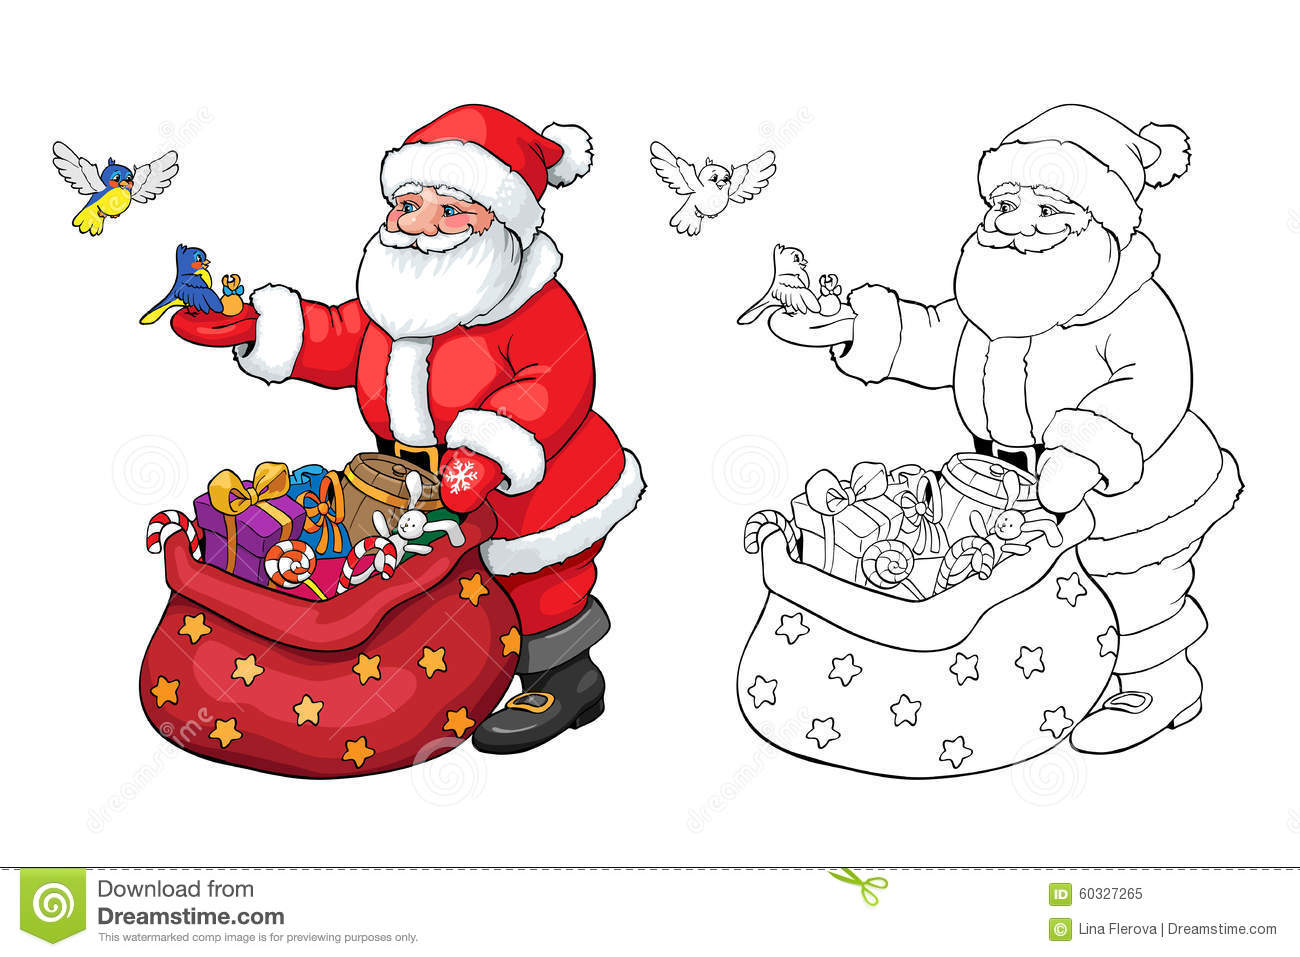 Coloring Book Or Page. Santa Claus With Christmas Gifts. Stock Vector - Illustration of happy ...